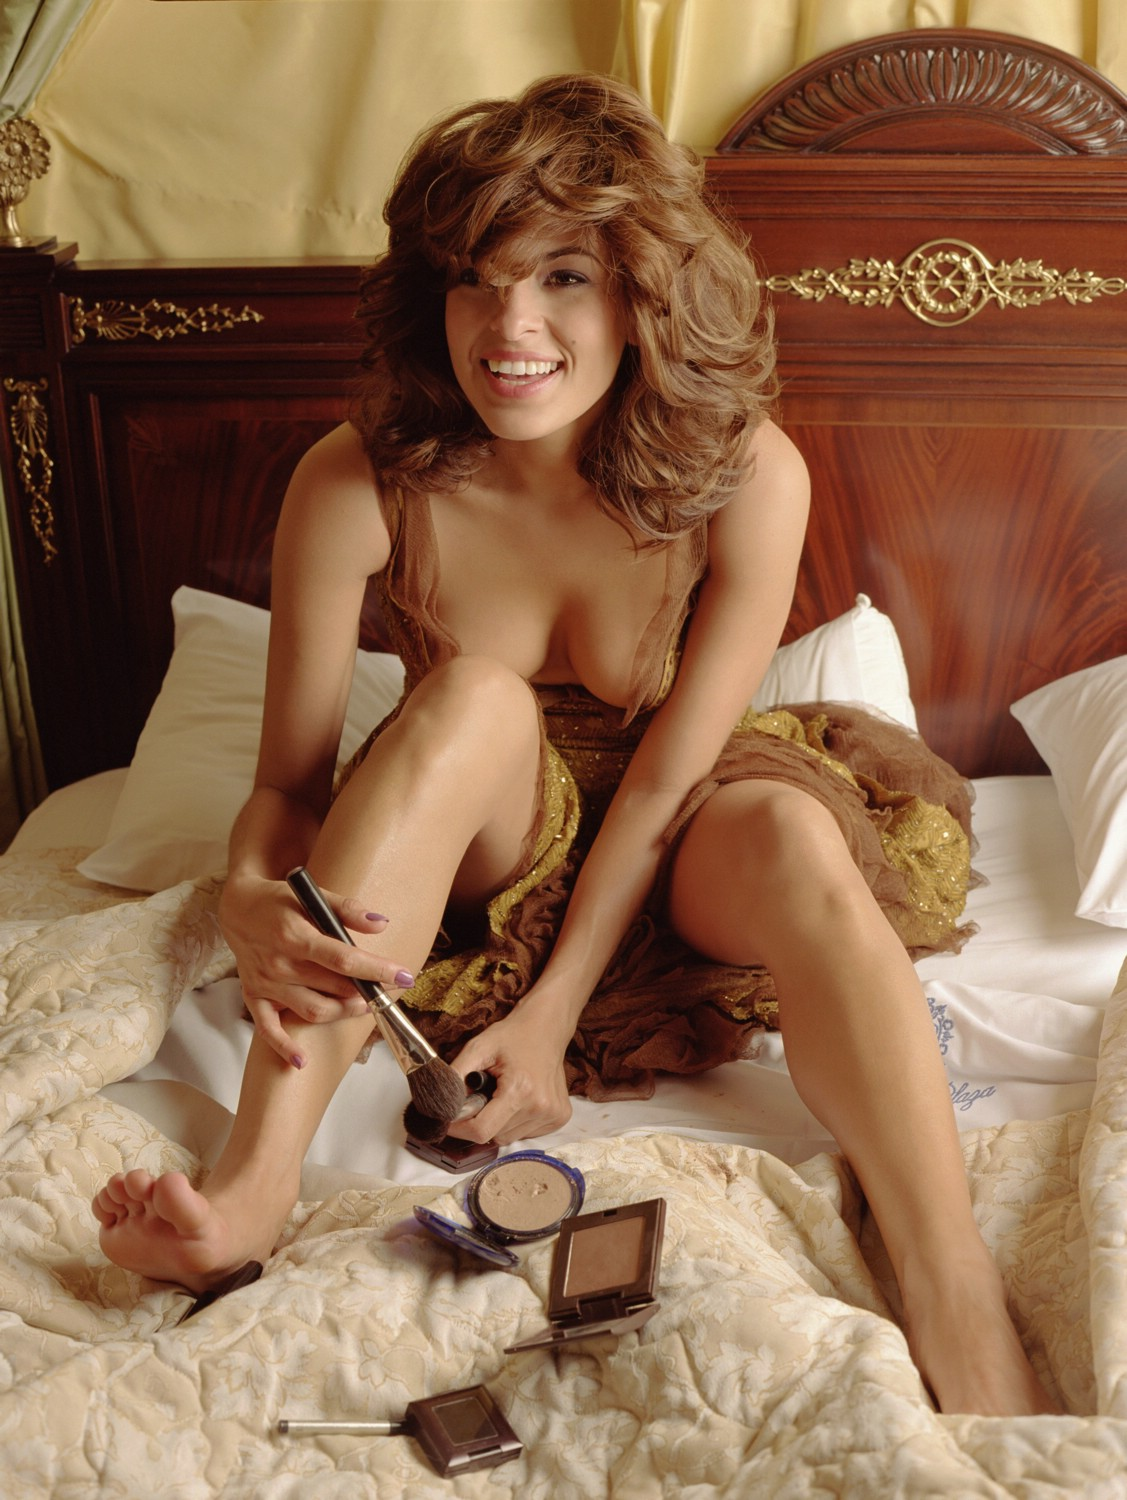 eva mendes exposed